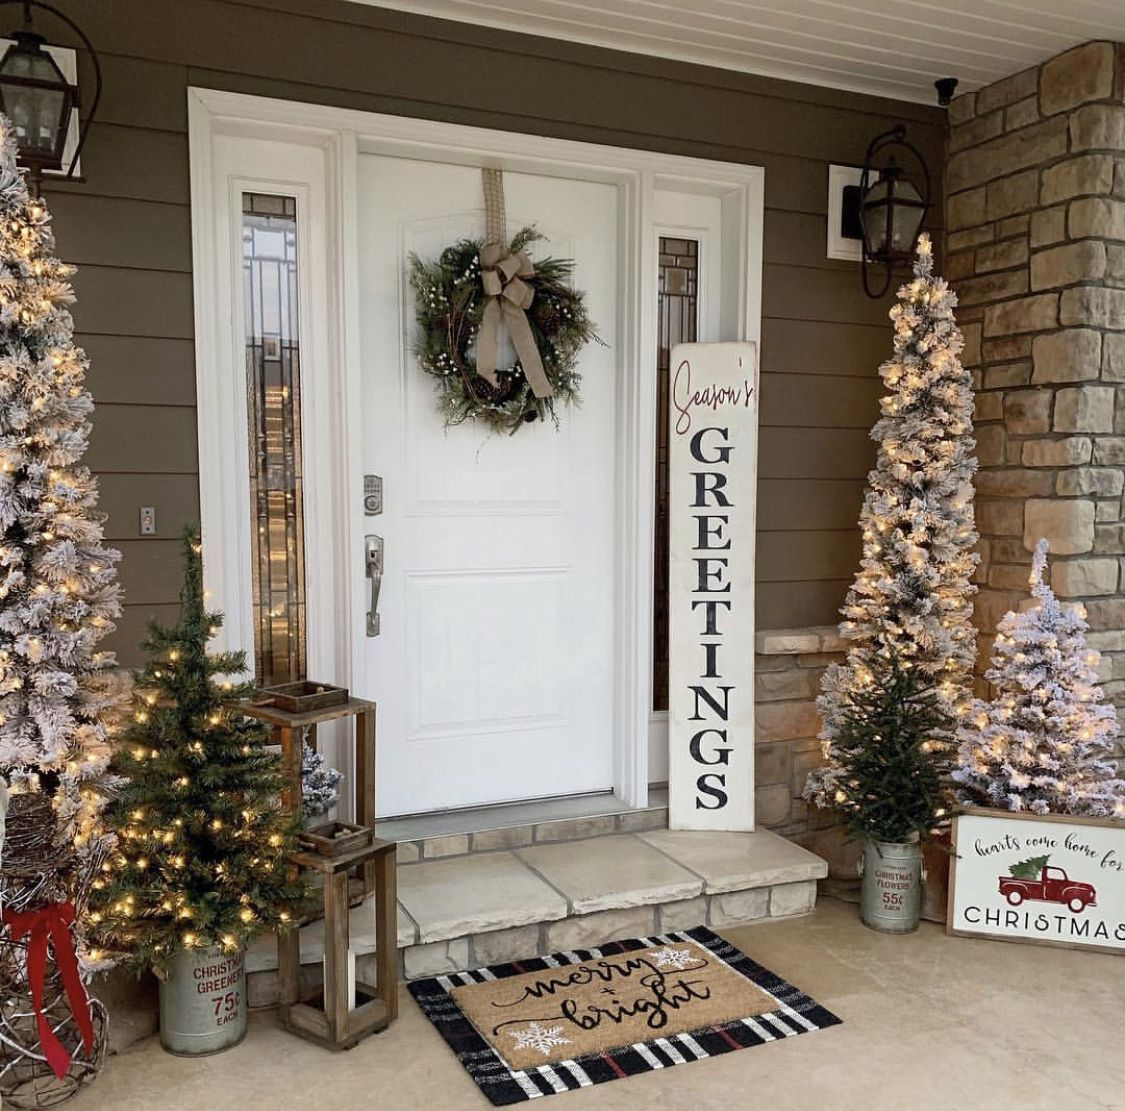 Pin By Candace Kent On Christmas Home Decor Christmas Porch Decor Diy Christmas Decorations Easy Outdoor Christmas Decorations